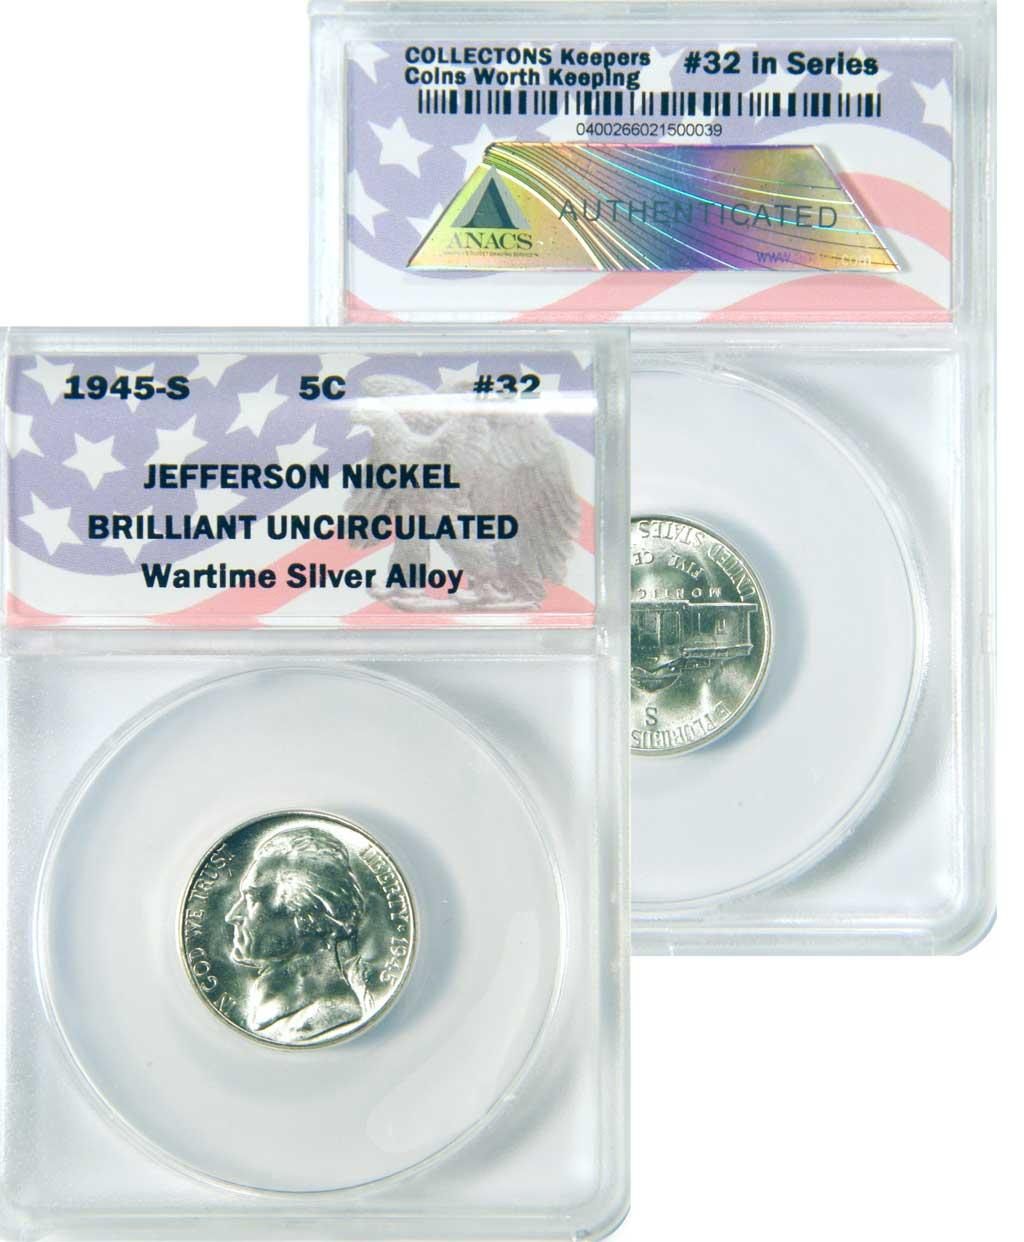 CollecTons Keepers #32: 1945-S Jefferson Silver Wartime Nickel Certified in Exclusive ANACS Brilliant Uncirculated Holder